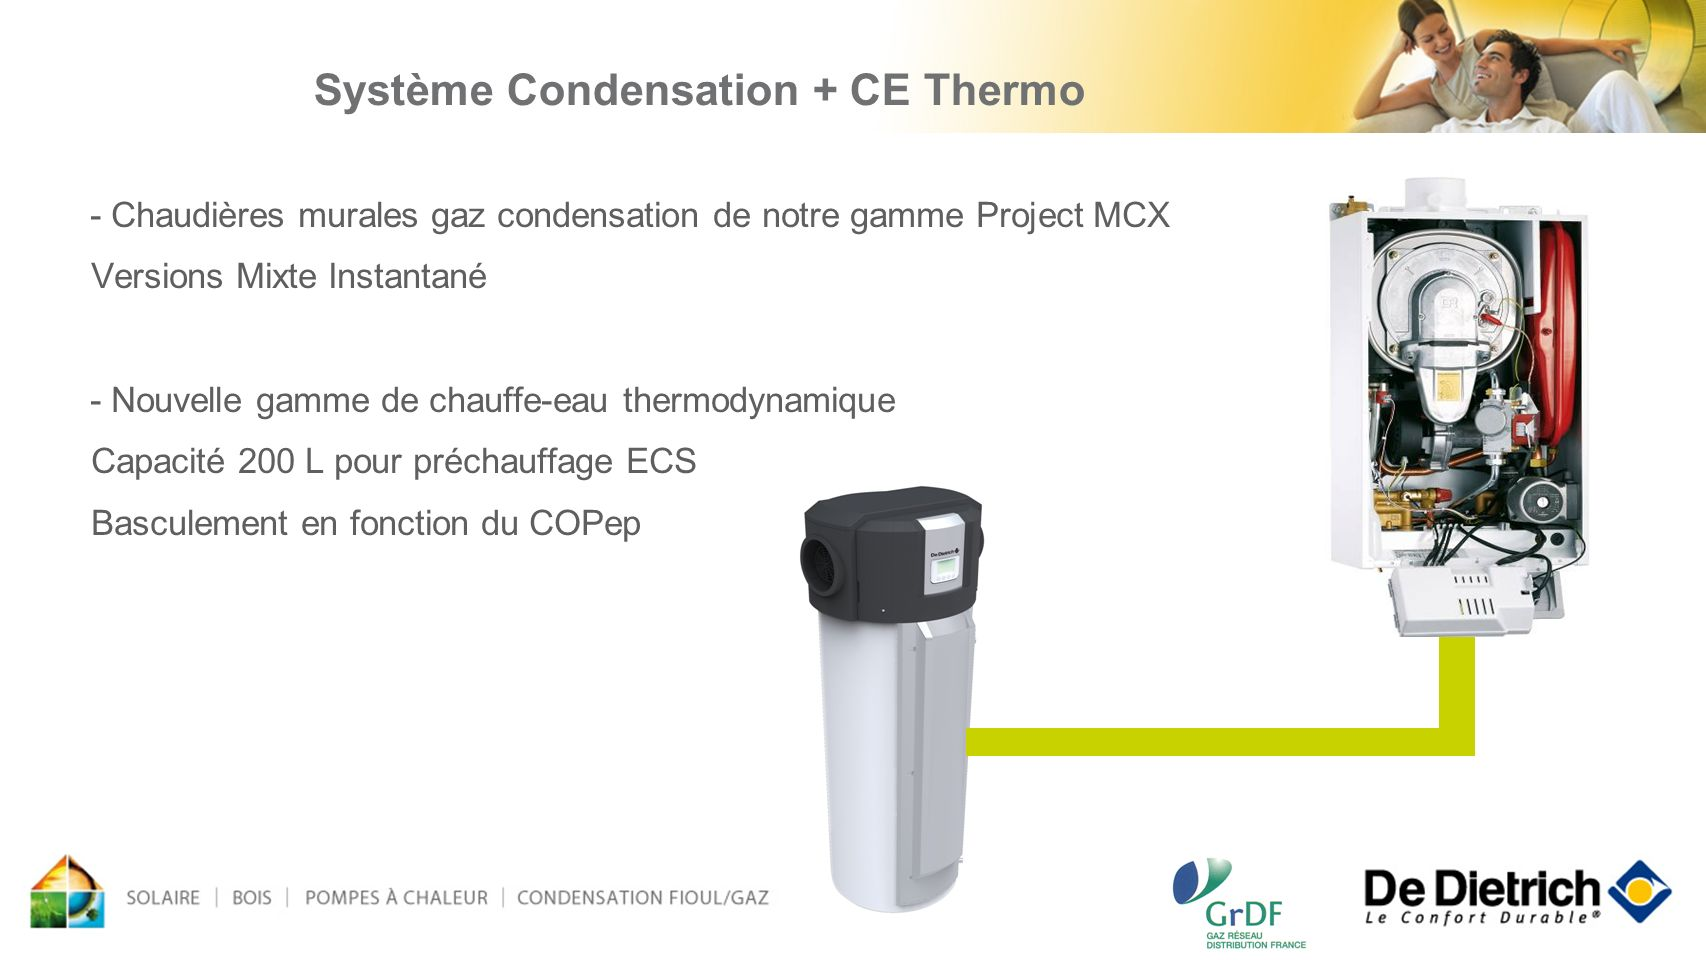 Système Condensation + CE Thermo